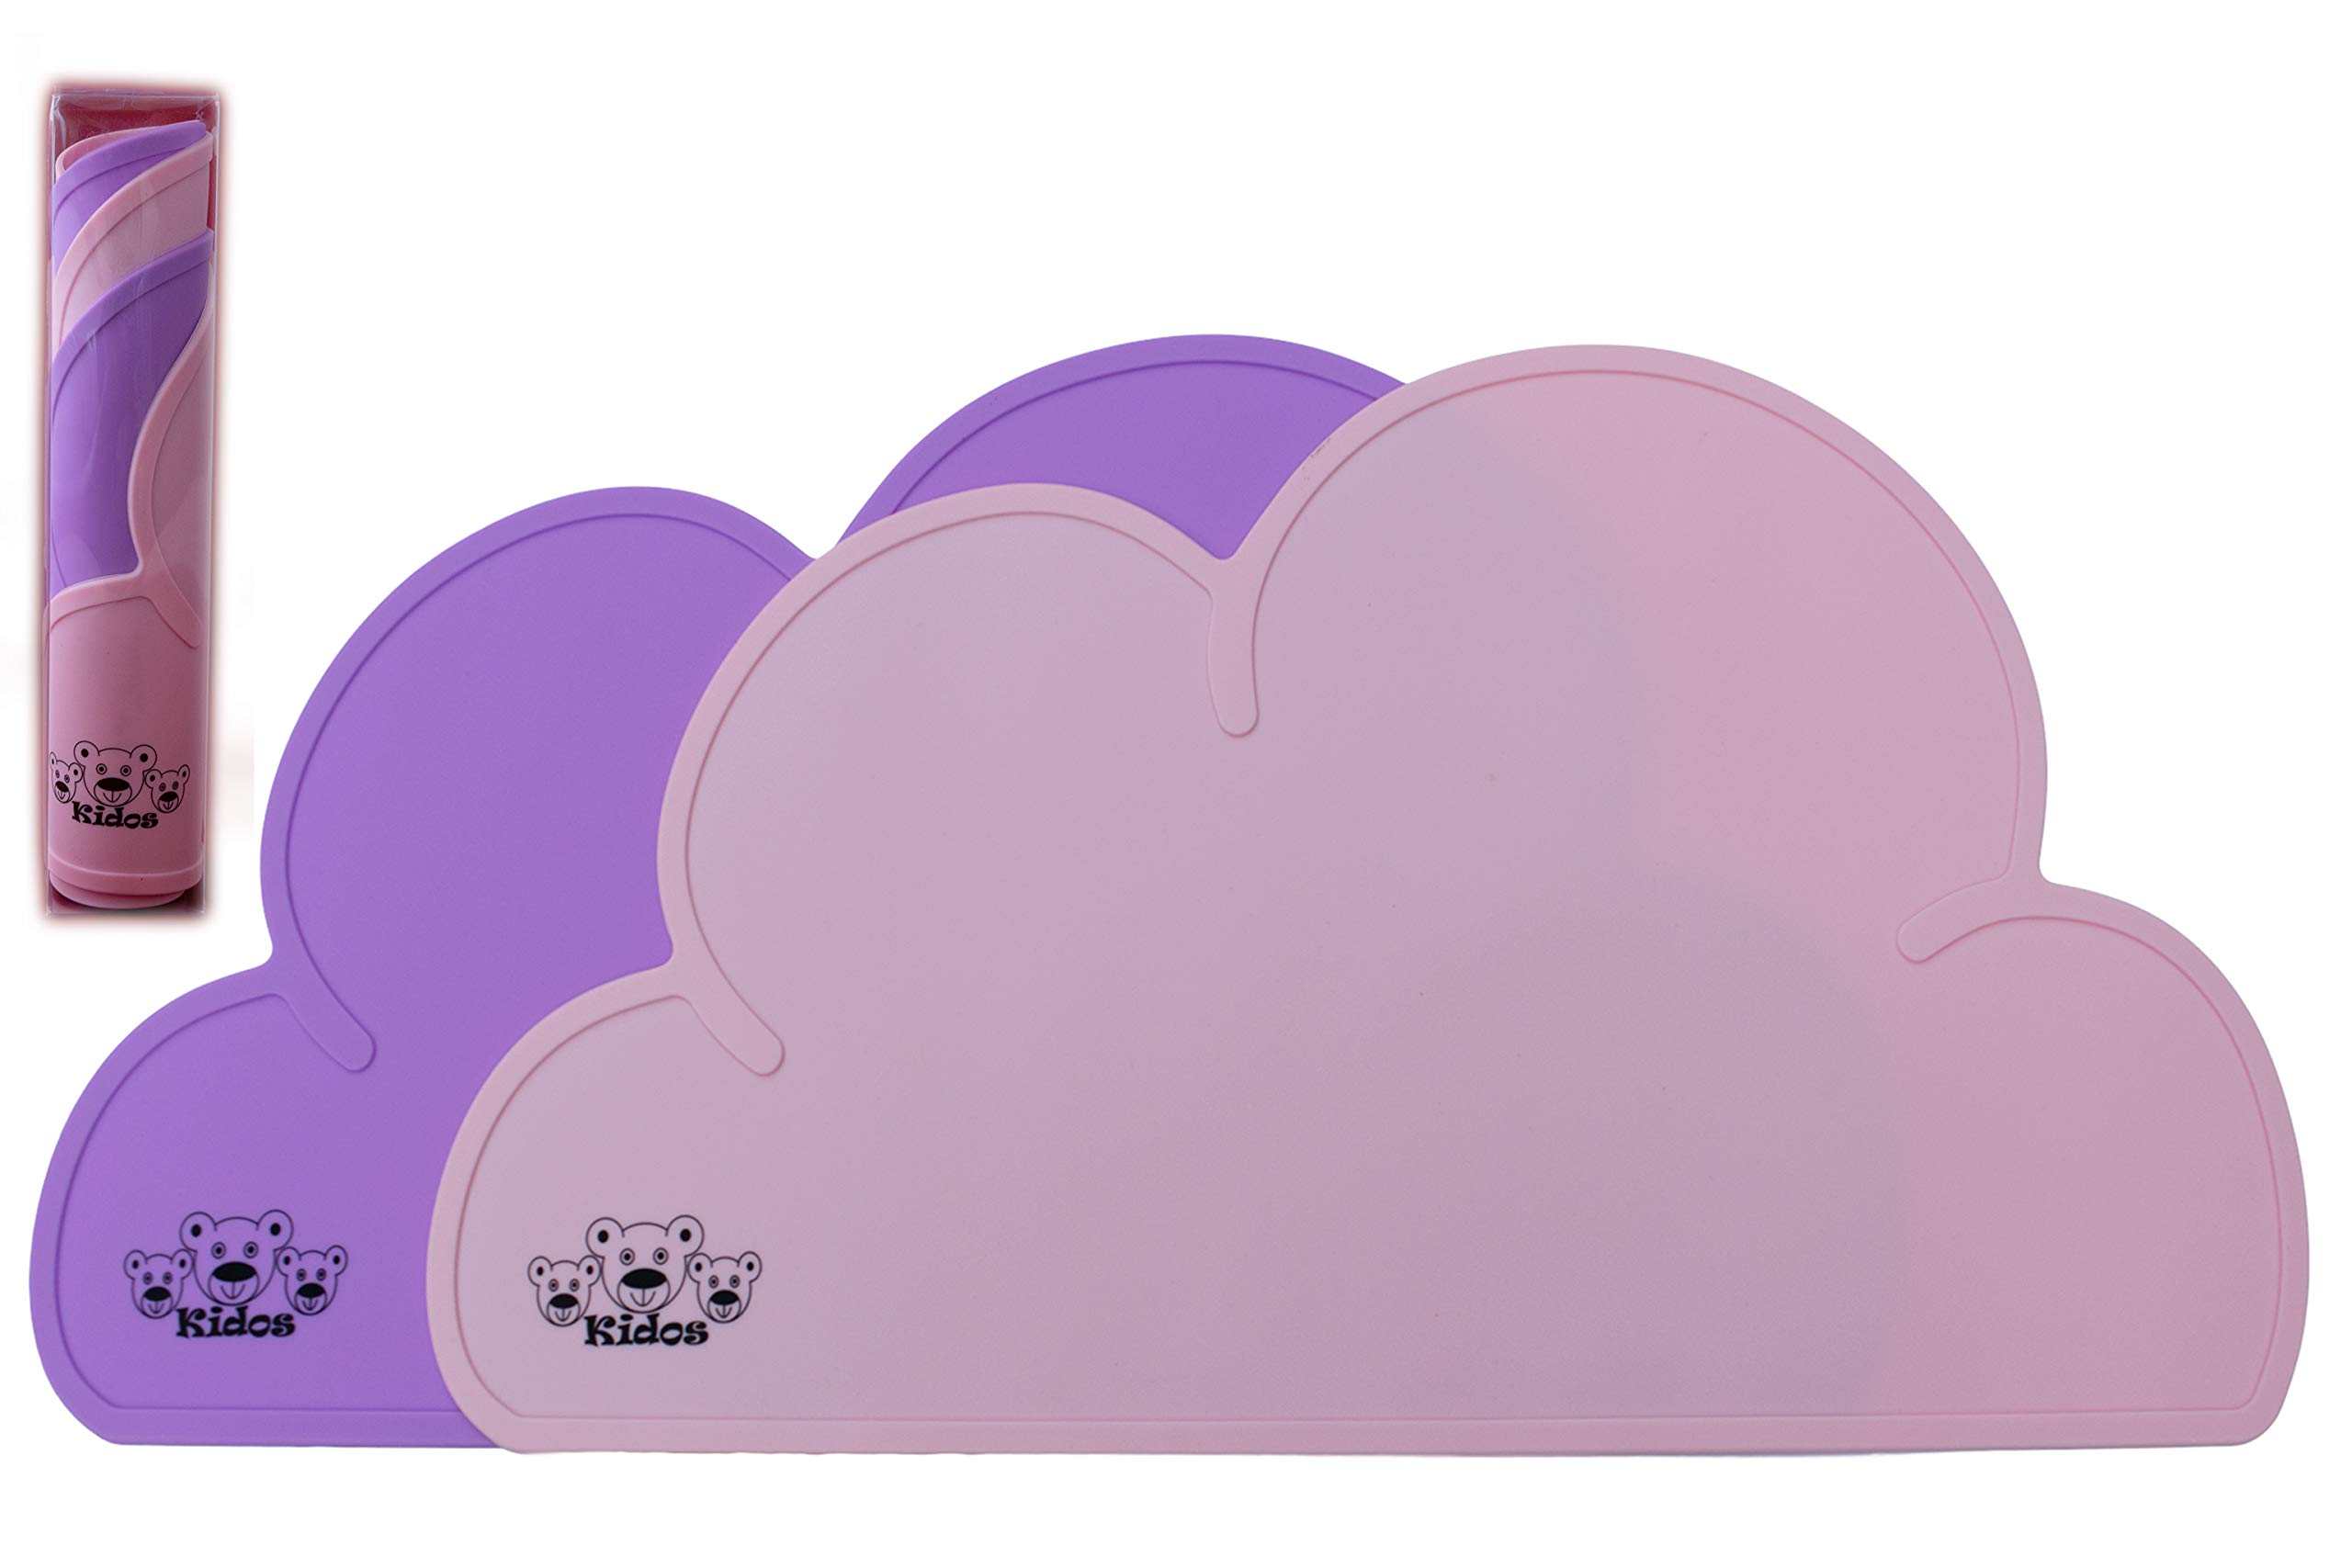 KIDOS Silicone Non Slip Cloud Placemat Kids Baby Toddlers|Set of 2|Reusable Easy Clean Waterproof Portable|Non-Toxic BPA Free FDA Approved Durable Material(Pink/Purple, 2 Pack) by KIDOS